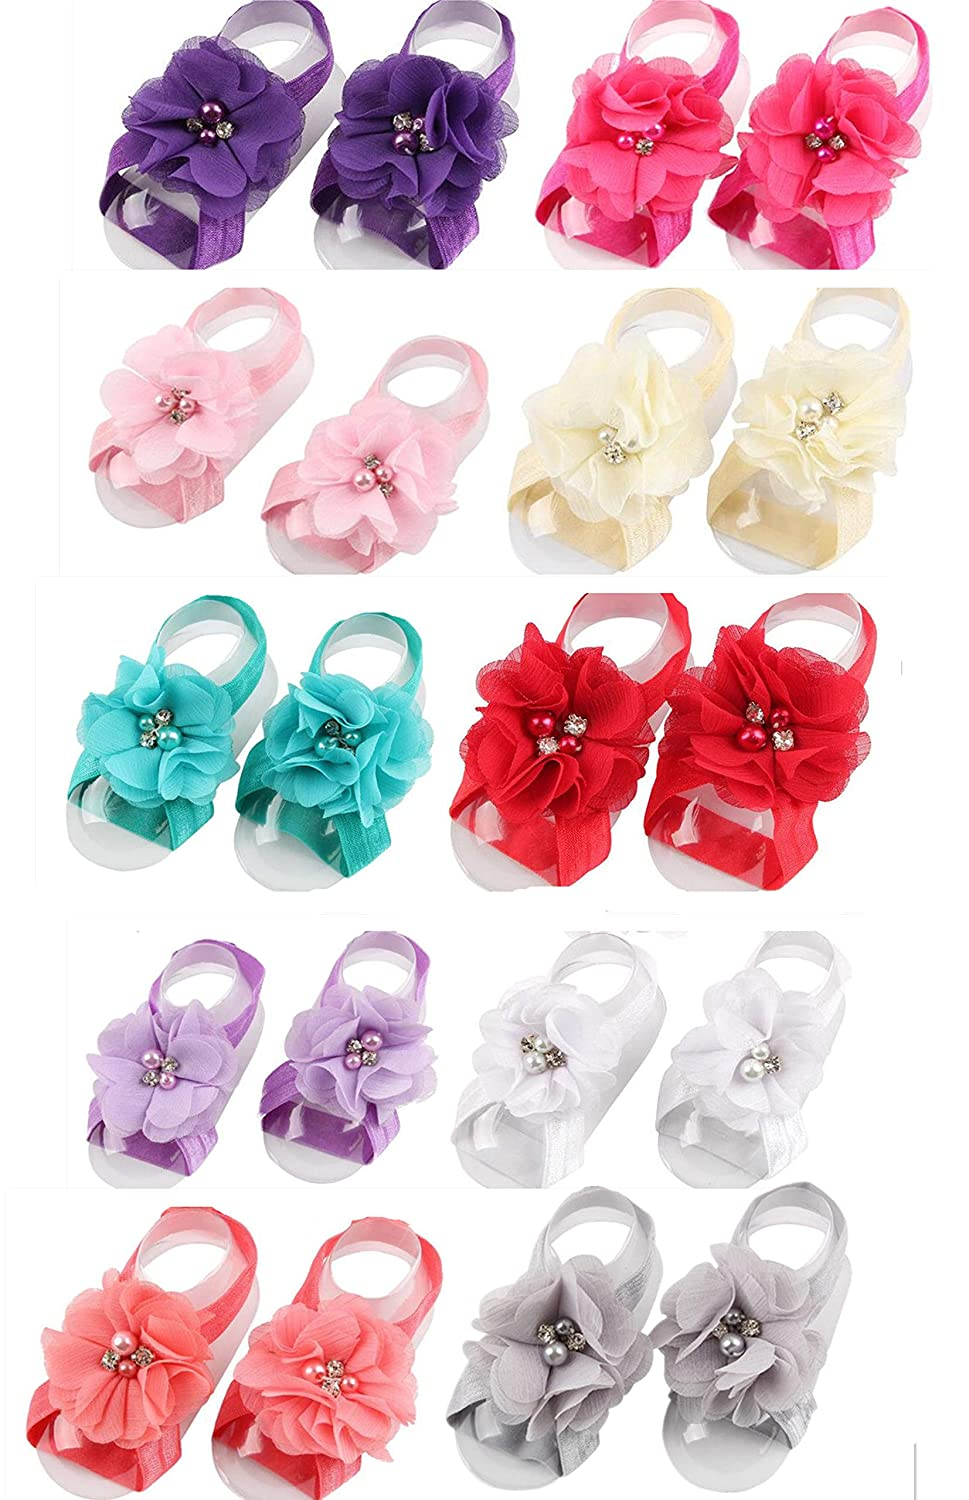 359b965a13010 Toptim Baby Girl's Barefoot Sandals Flower for Toddlers (10 Mix Colors)